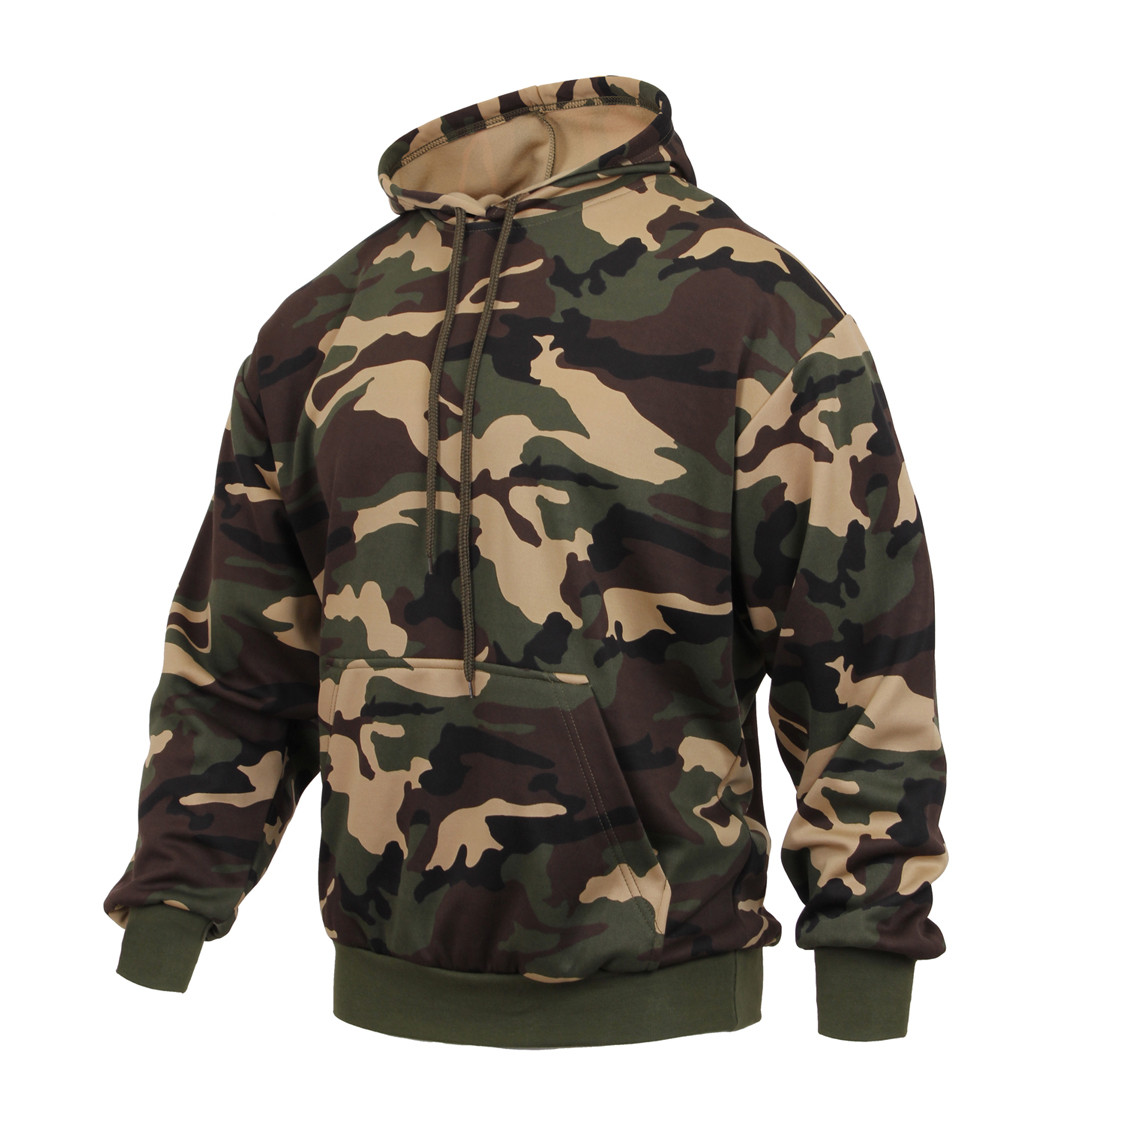 f500620a Shop High Performance Sweatshirts - Fatigues Army Navy Gear